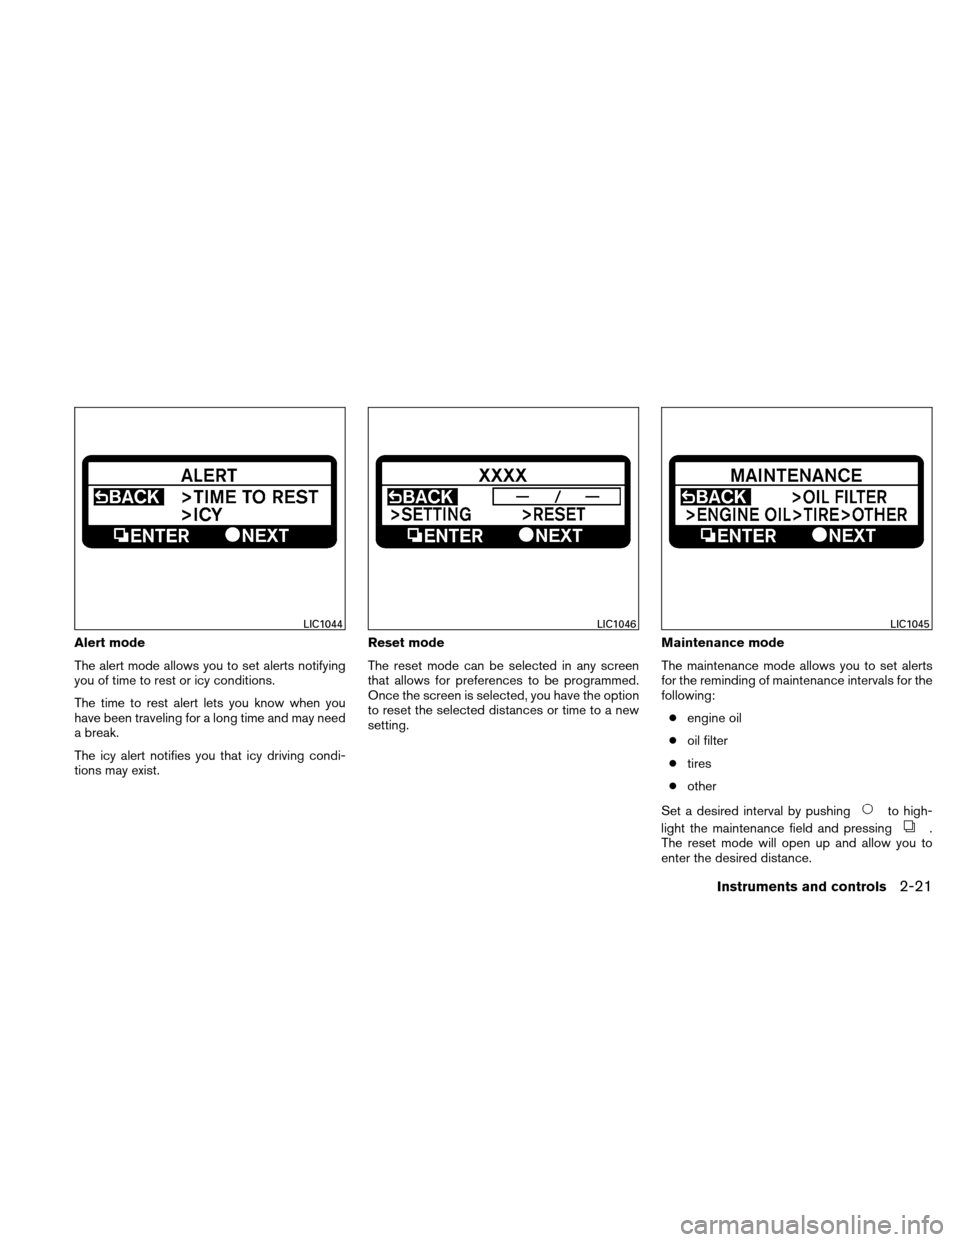 NISSAN ALTIMA HYBRID 2010 L32A / 4.G Owners Manual, Page 102